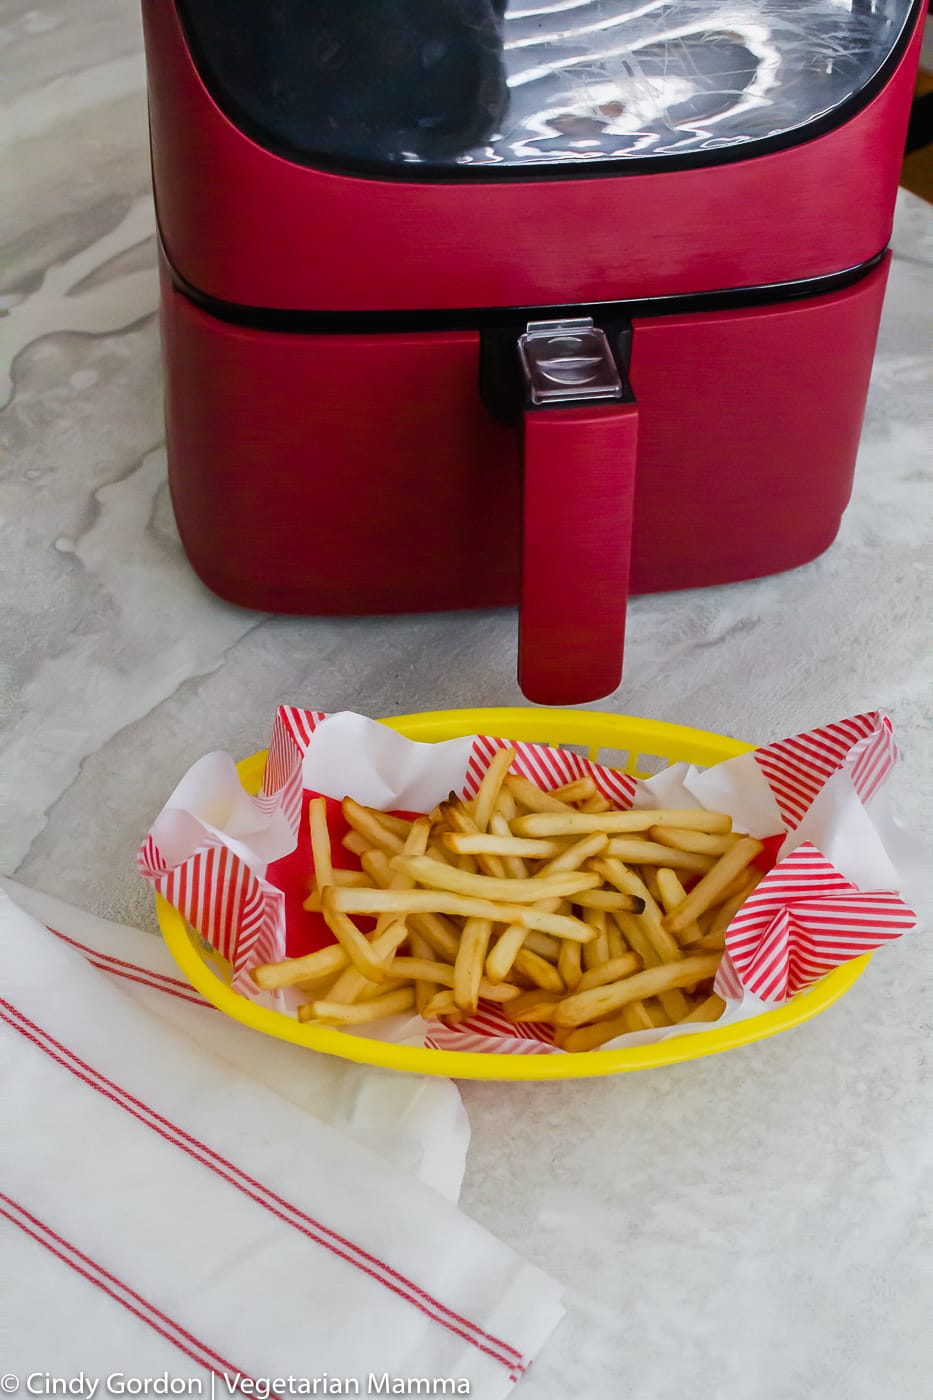 red air fryer and cooked french fries